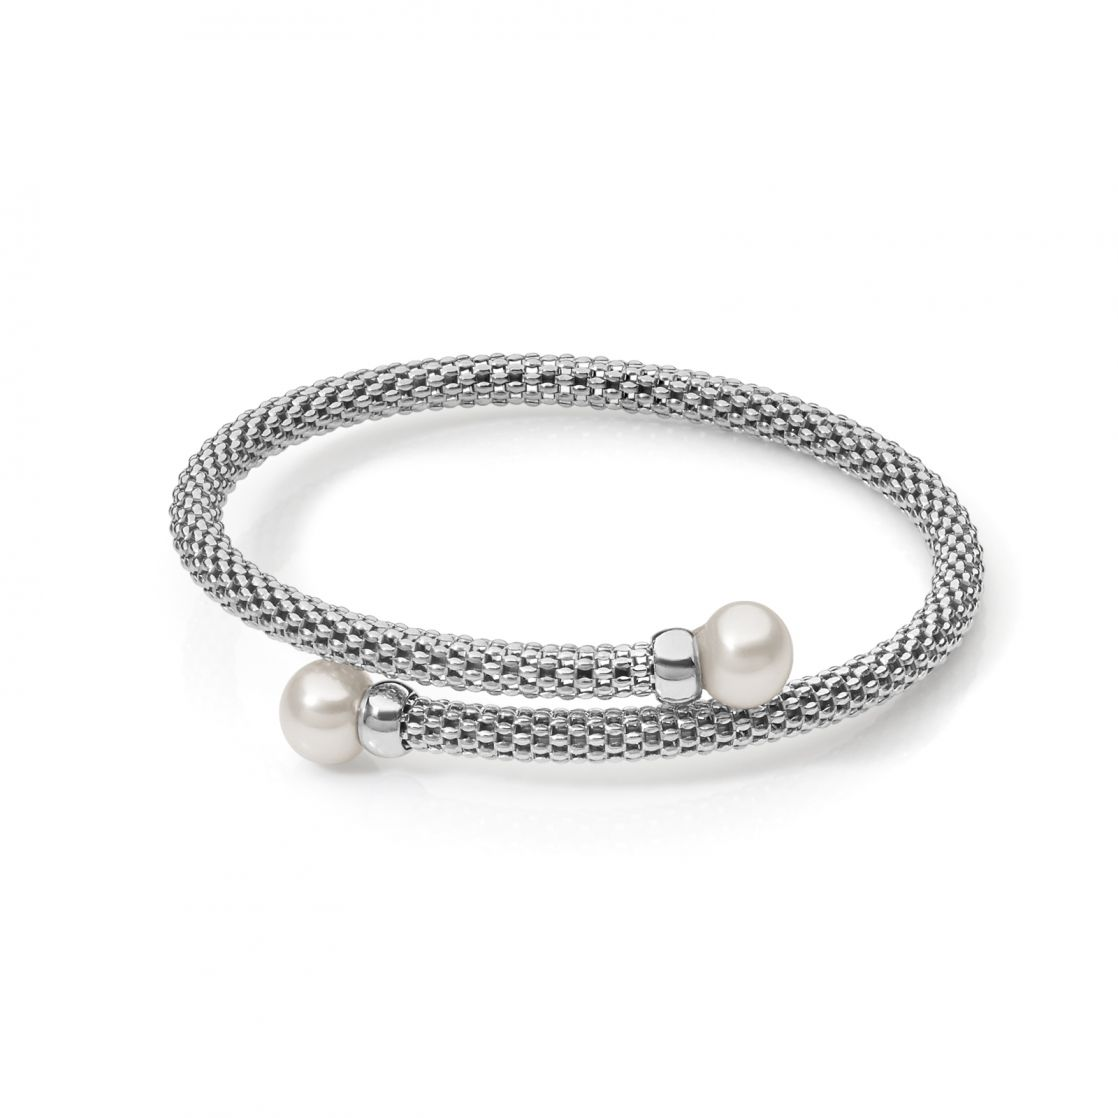 CUFF BANGLE WITH PEARLS